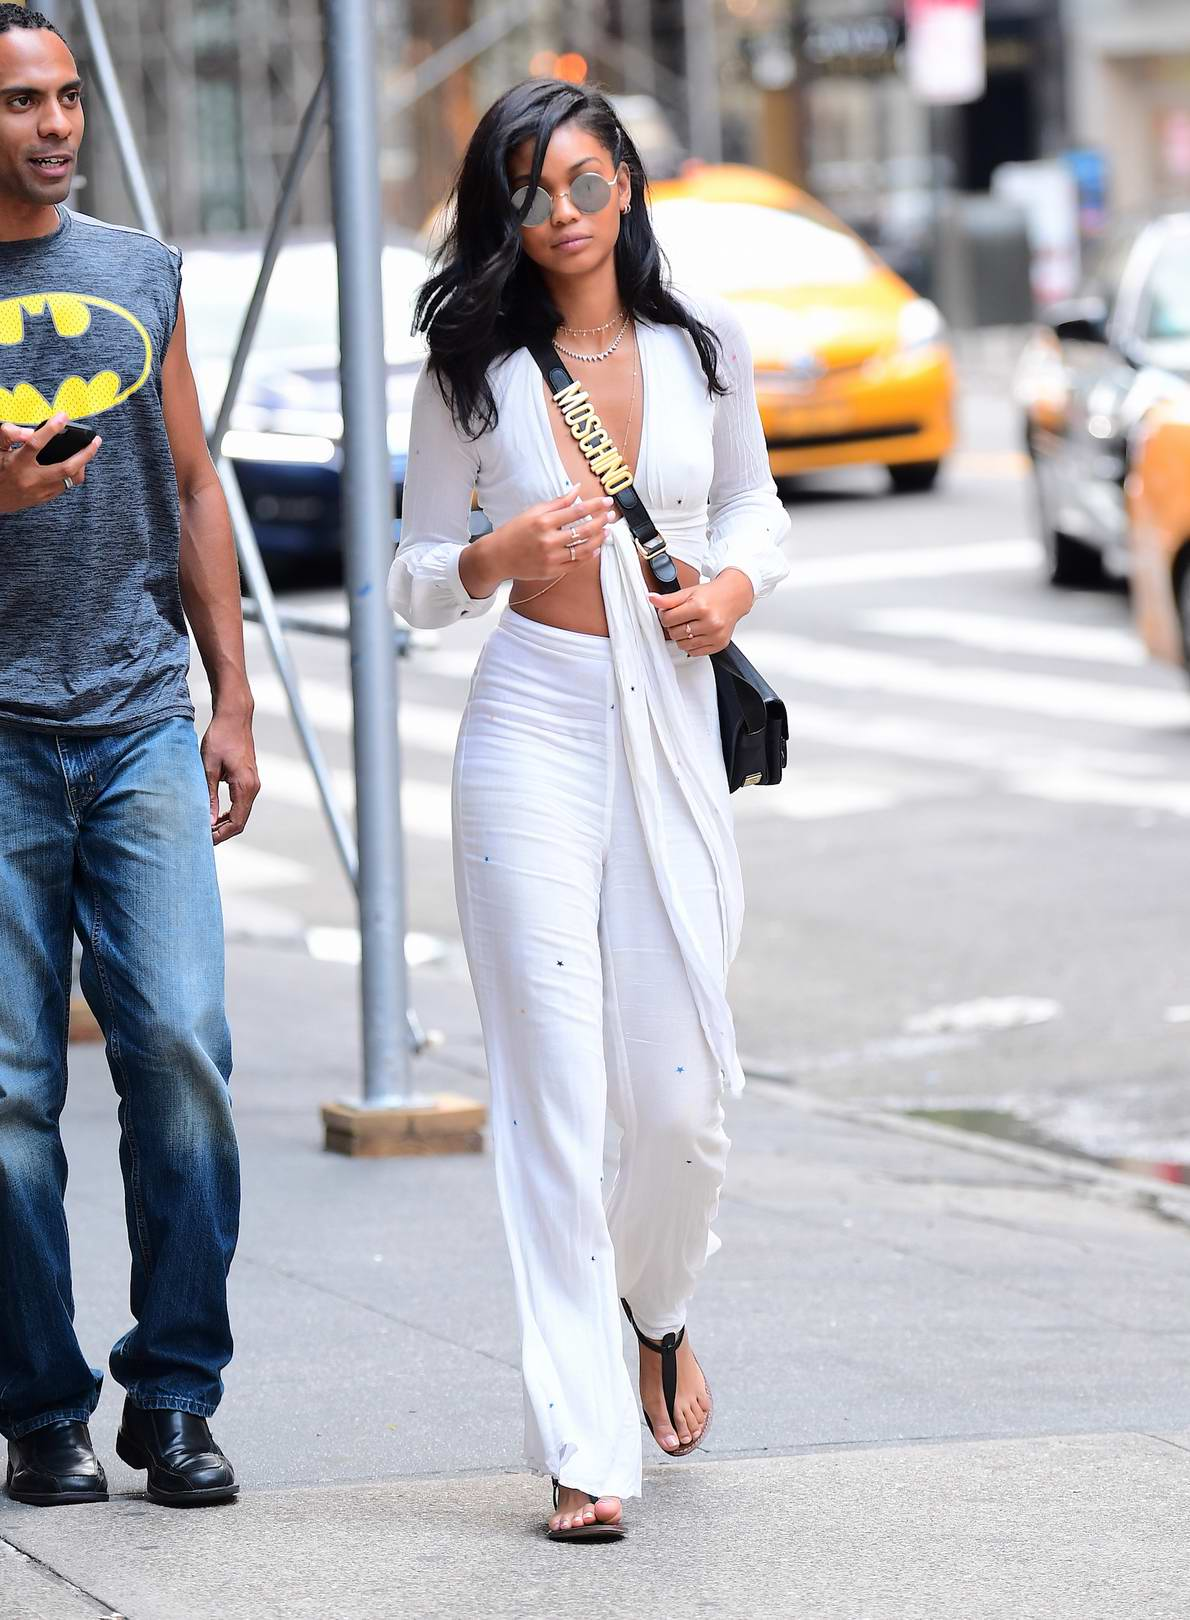 Chanel Iman was spotted out after leaving lunch at Nobu in New York